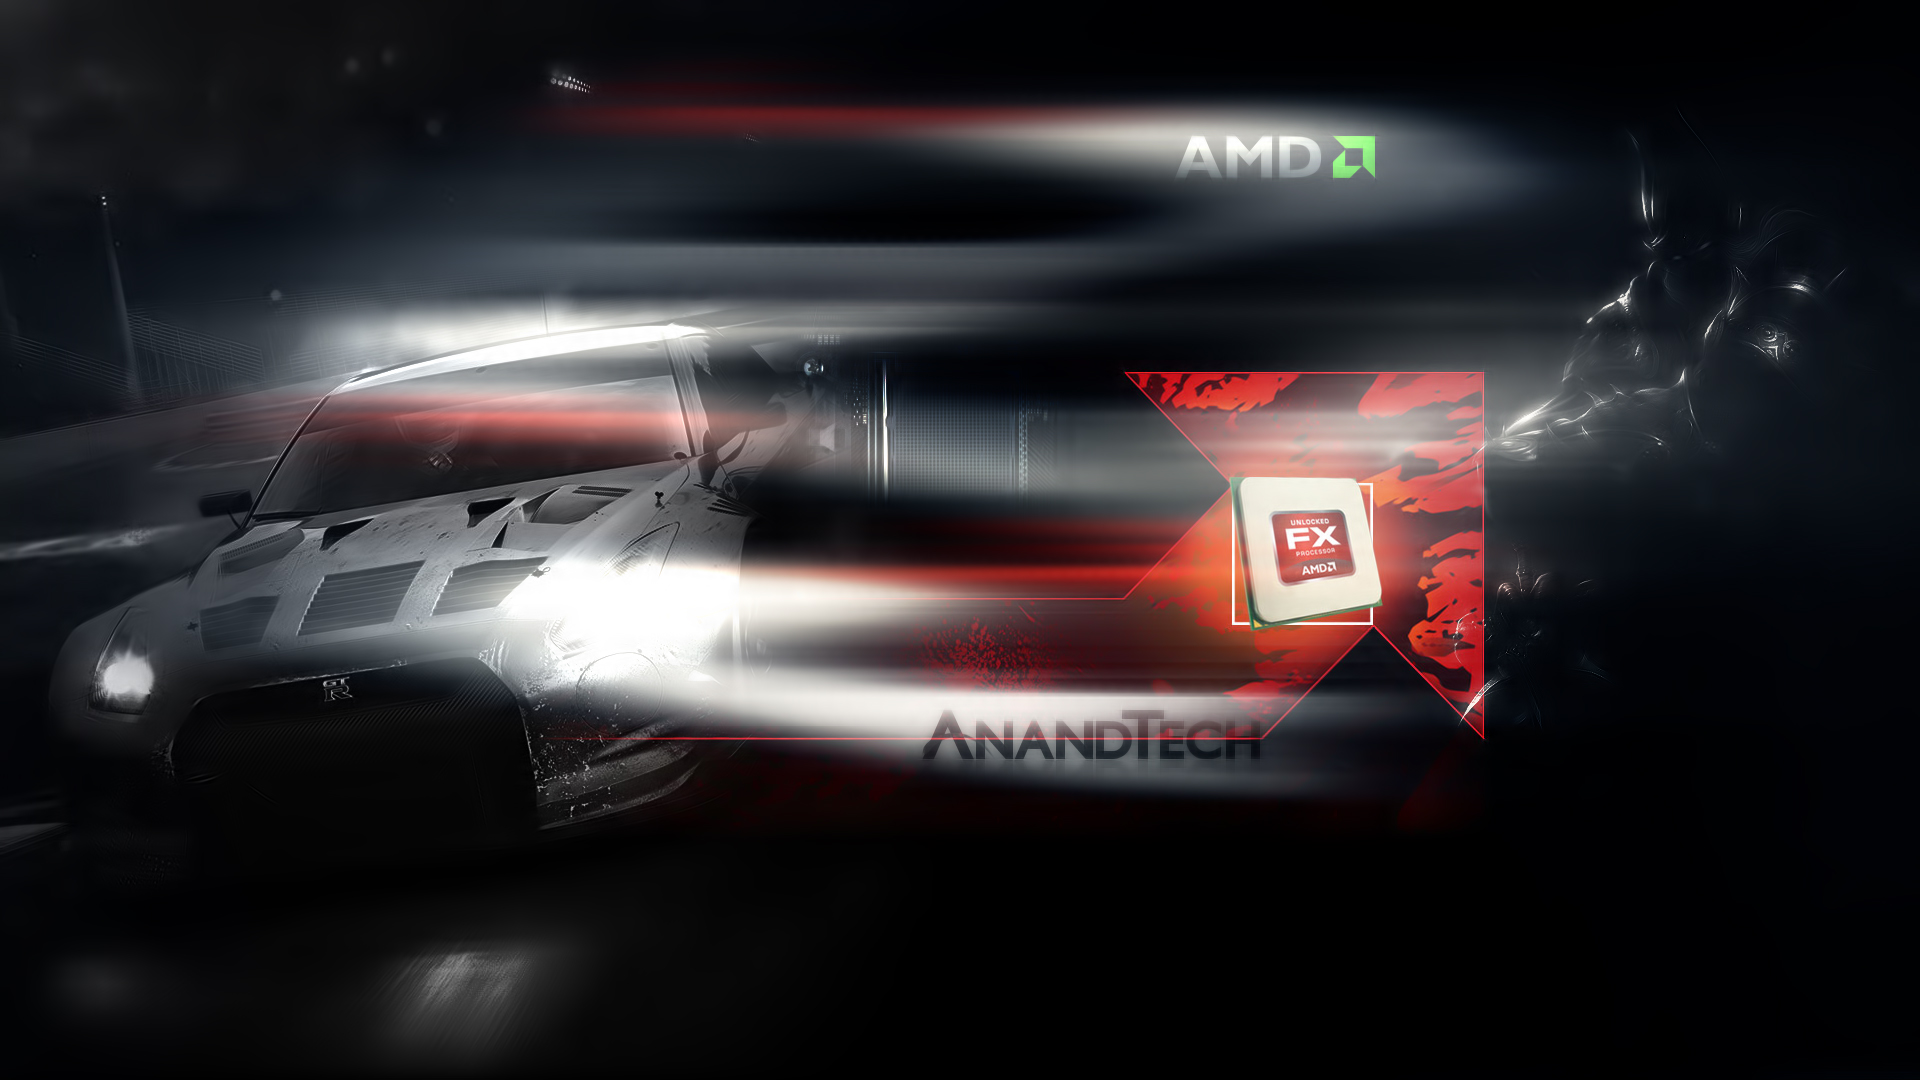 49+] AMD FX Wallpaper on WallpaperSafari